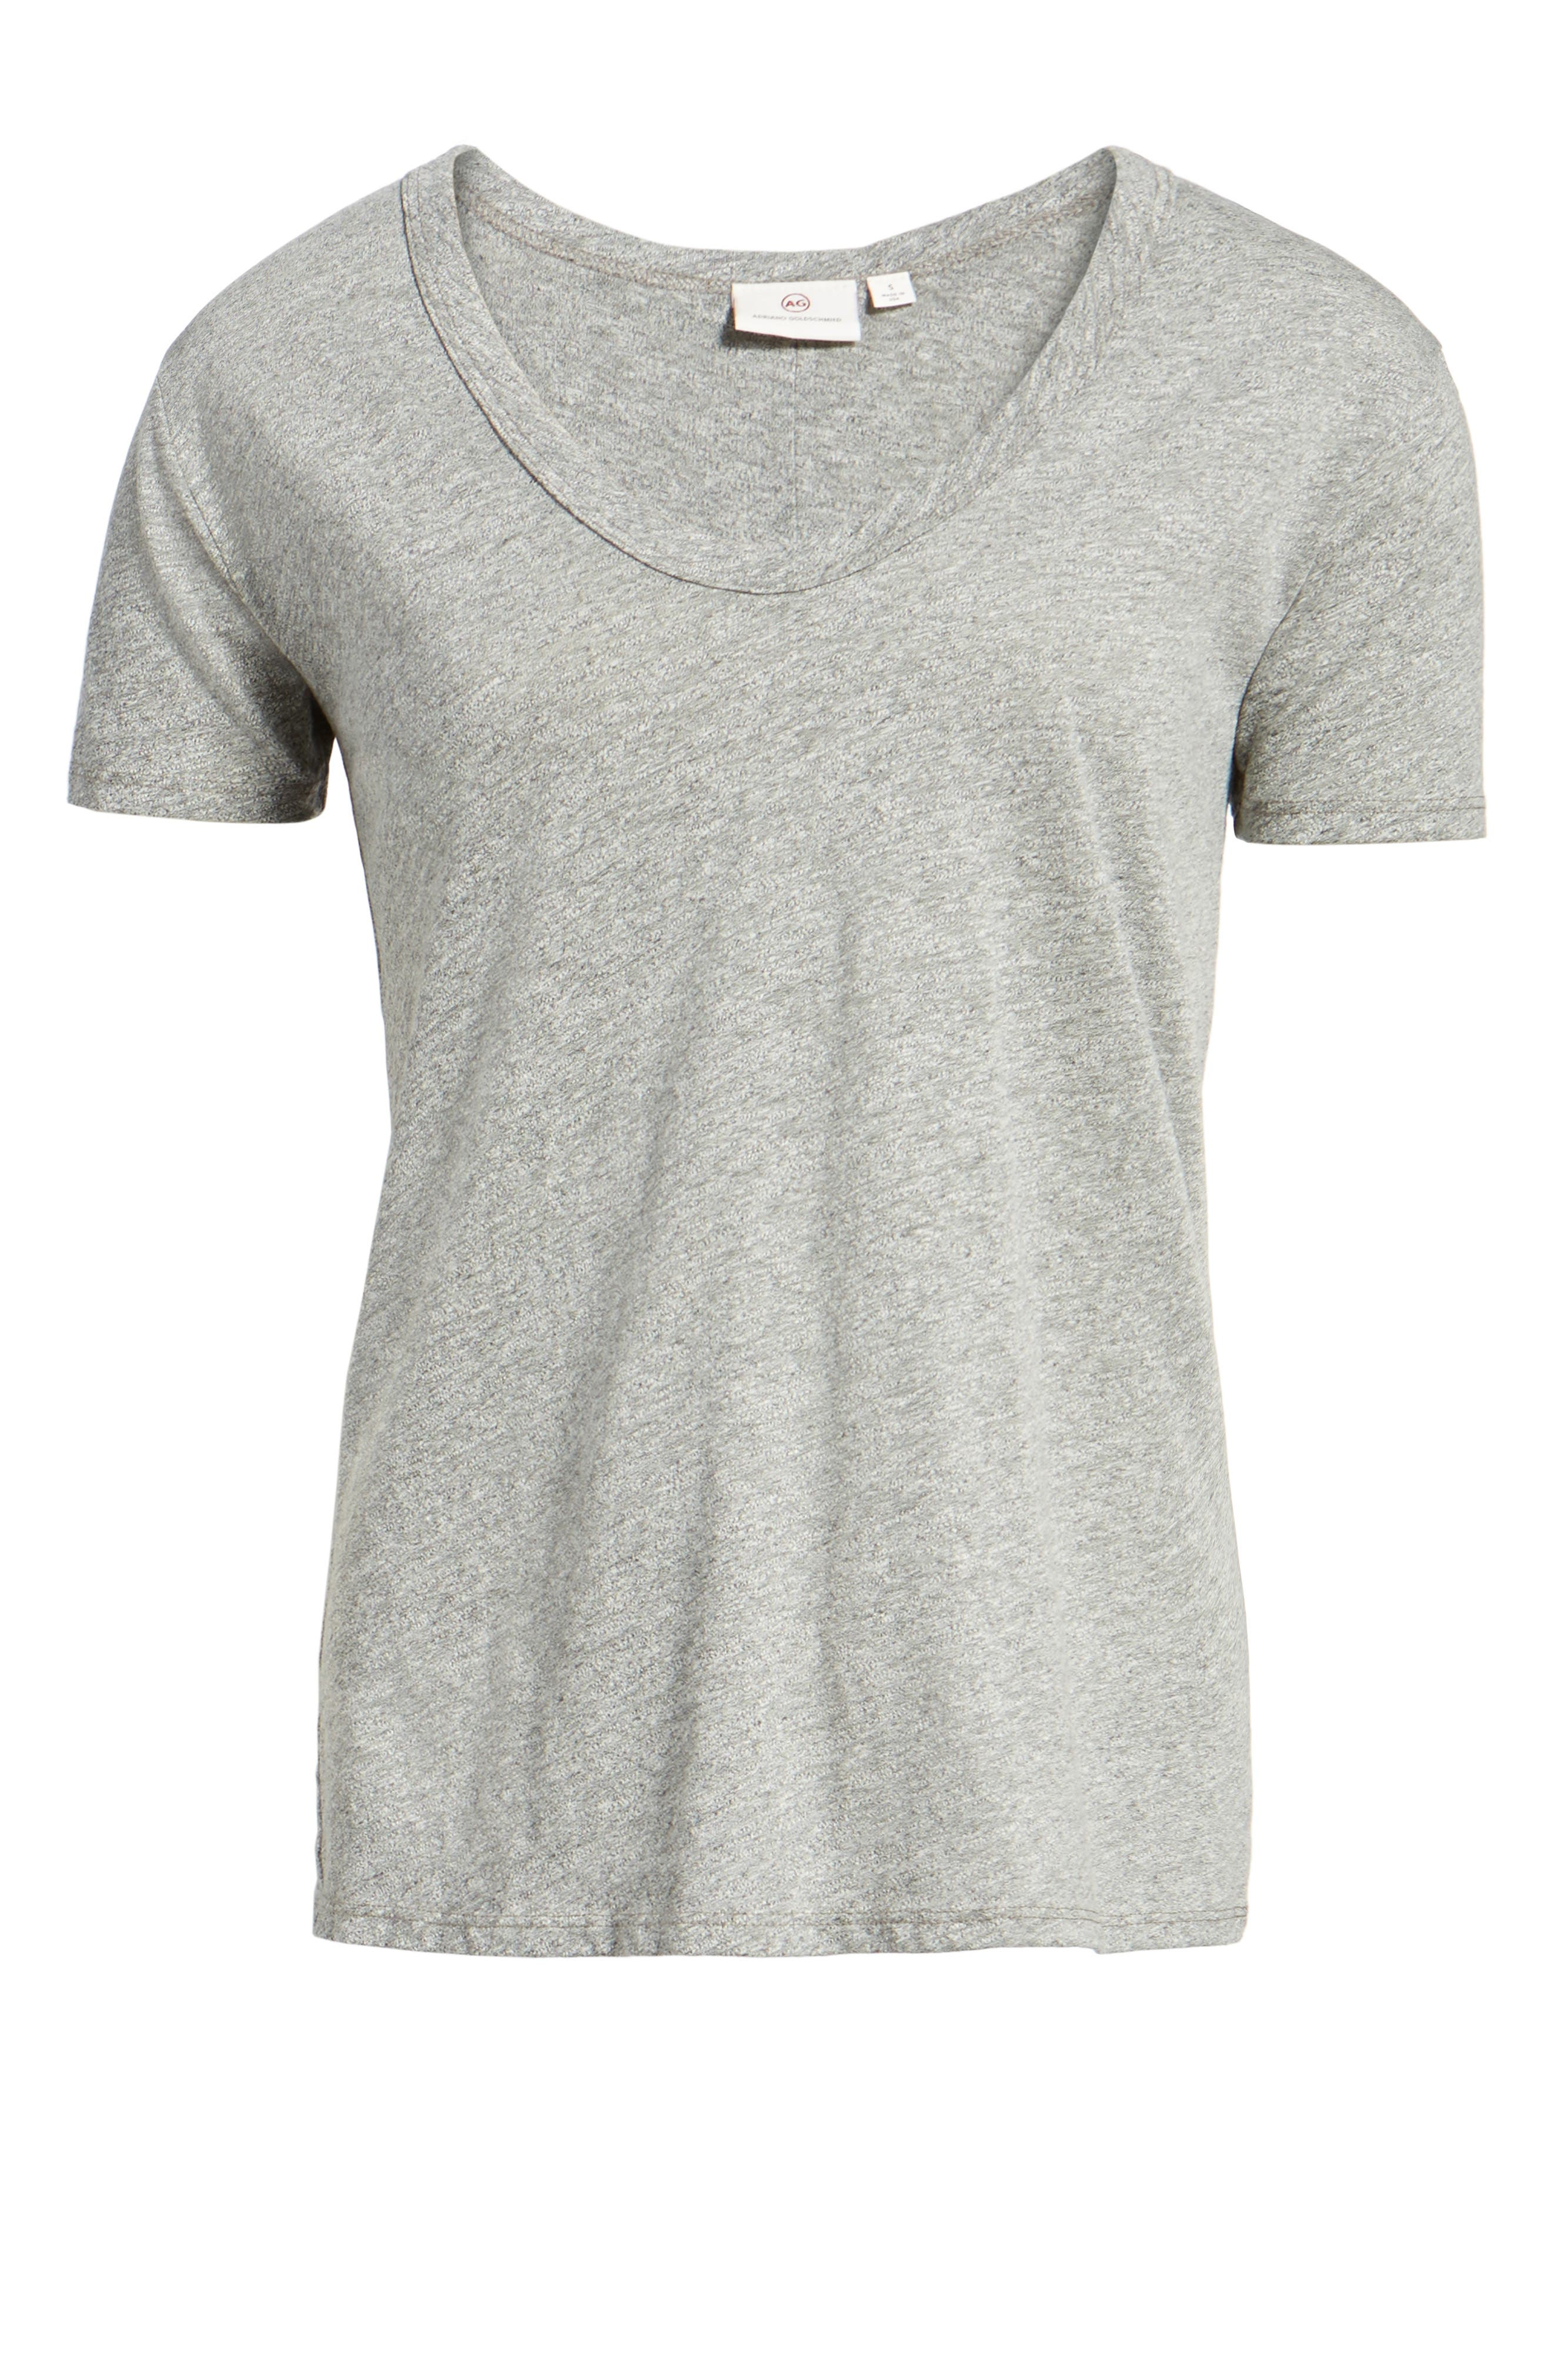 Henson Tee,                             Alternate thumbnail 6, color,                             SPECKLED HEATHER GREY